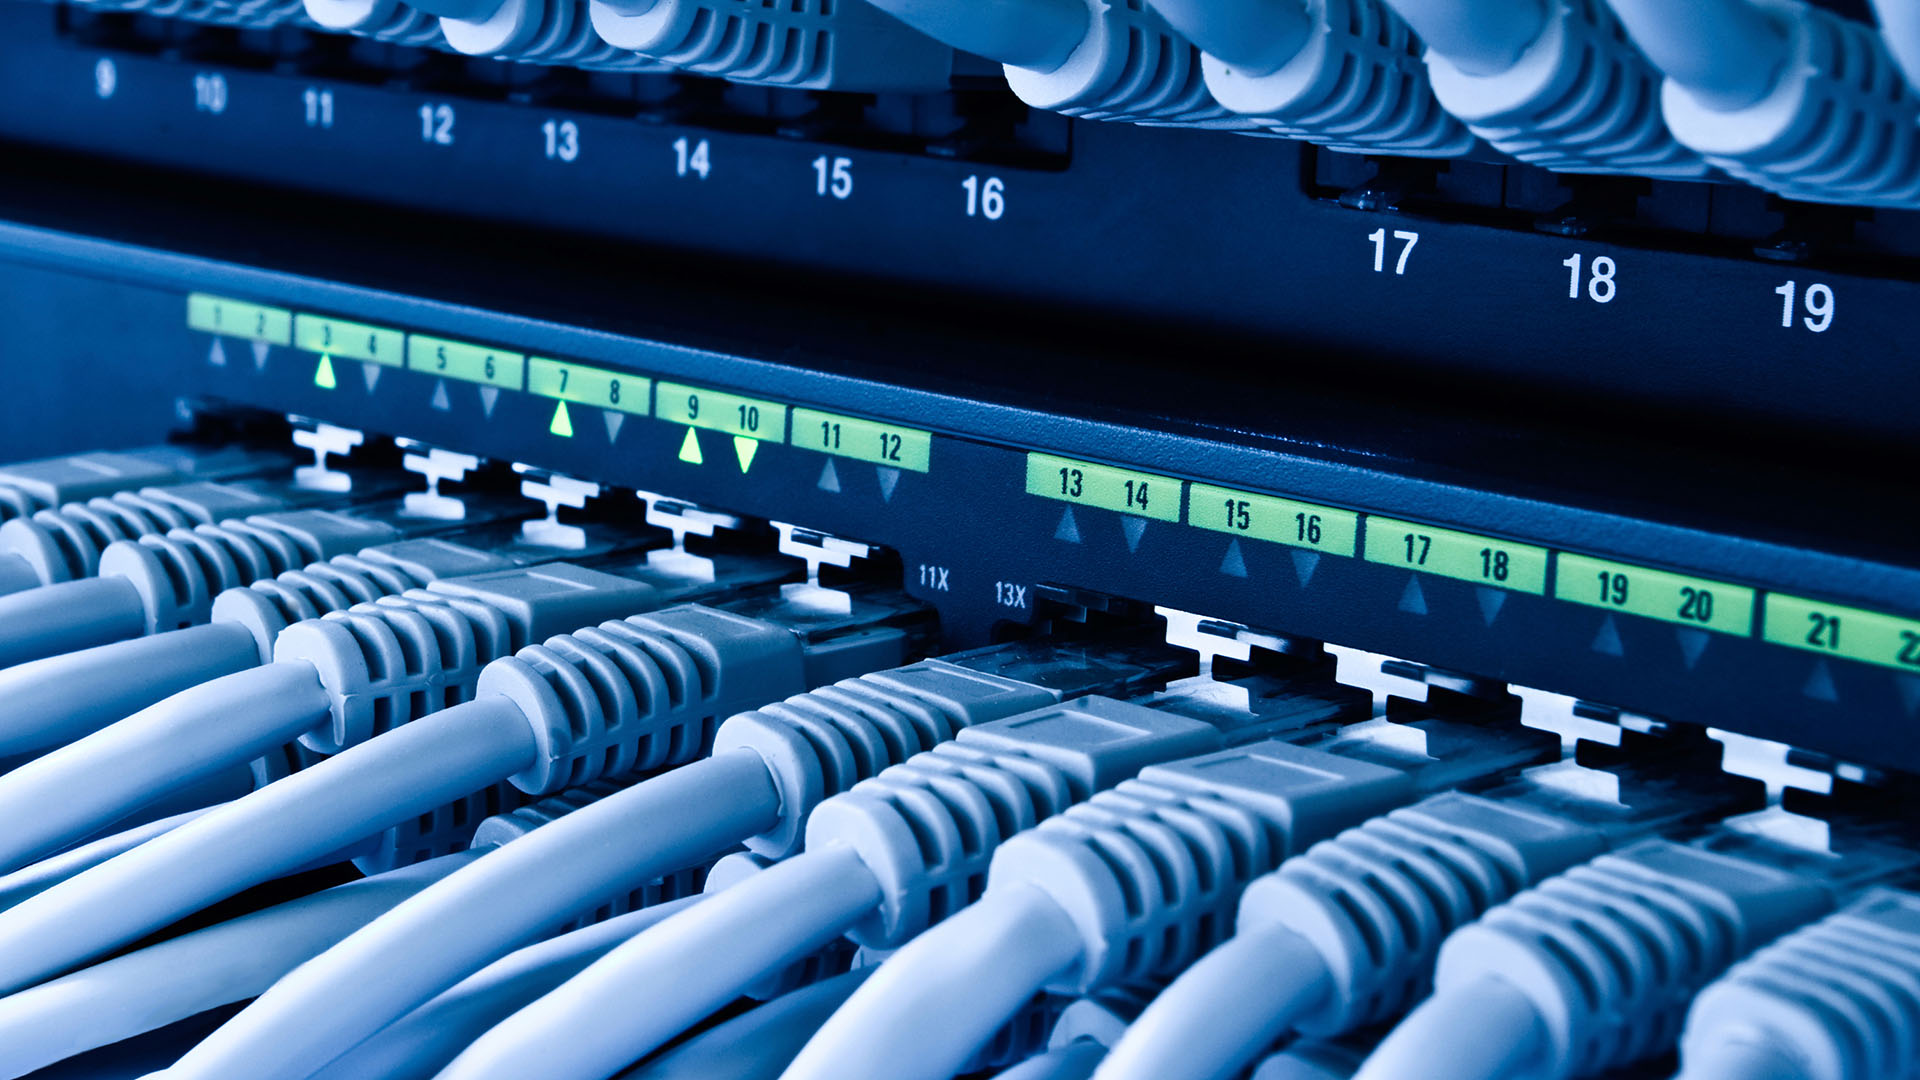 Toccoa GA High Quality Onsite Cabling for Voice & Data Networks, Low Voltage Solutions